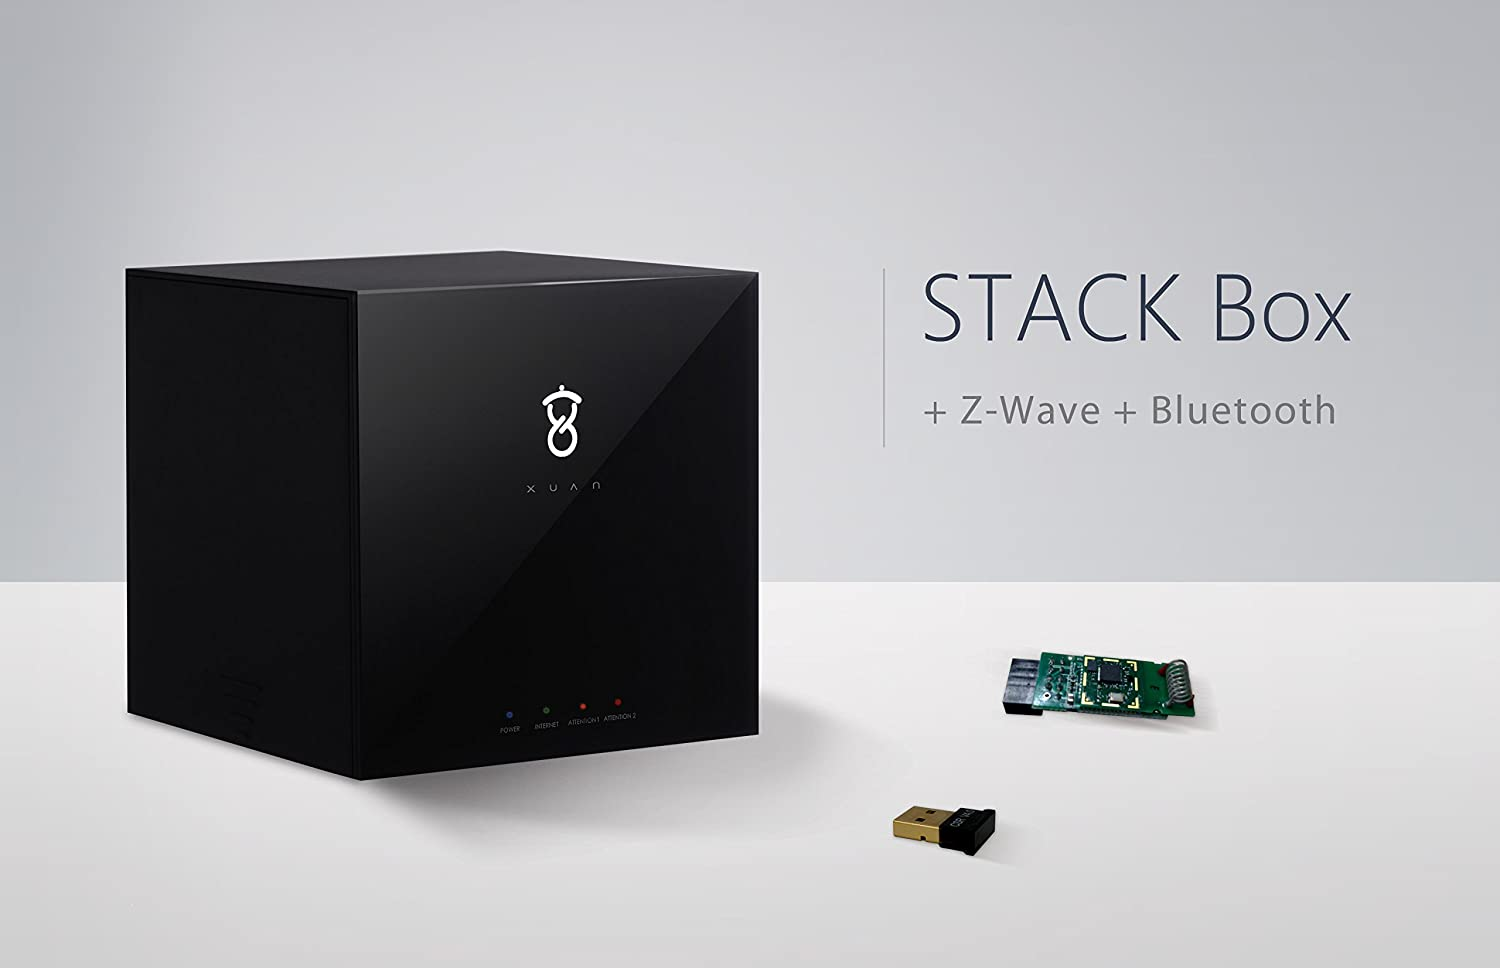 Xuan Stack Box IoT Hub (Gateway) - A Smart Home Automation Controller with Z-Wave and BLE